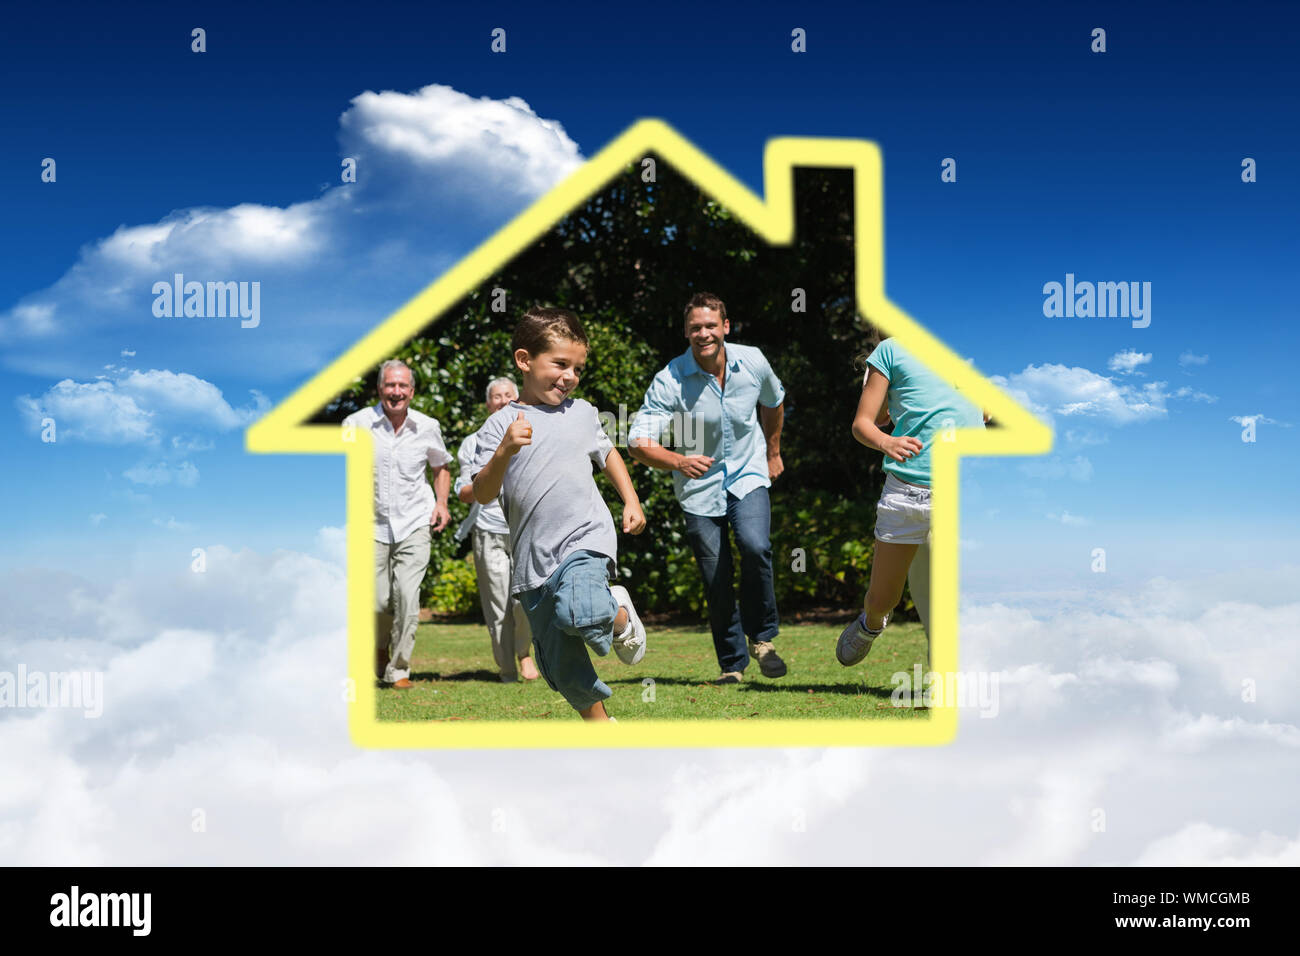 House outline against bright blue sky with clouds Stock Photo